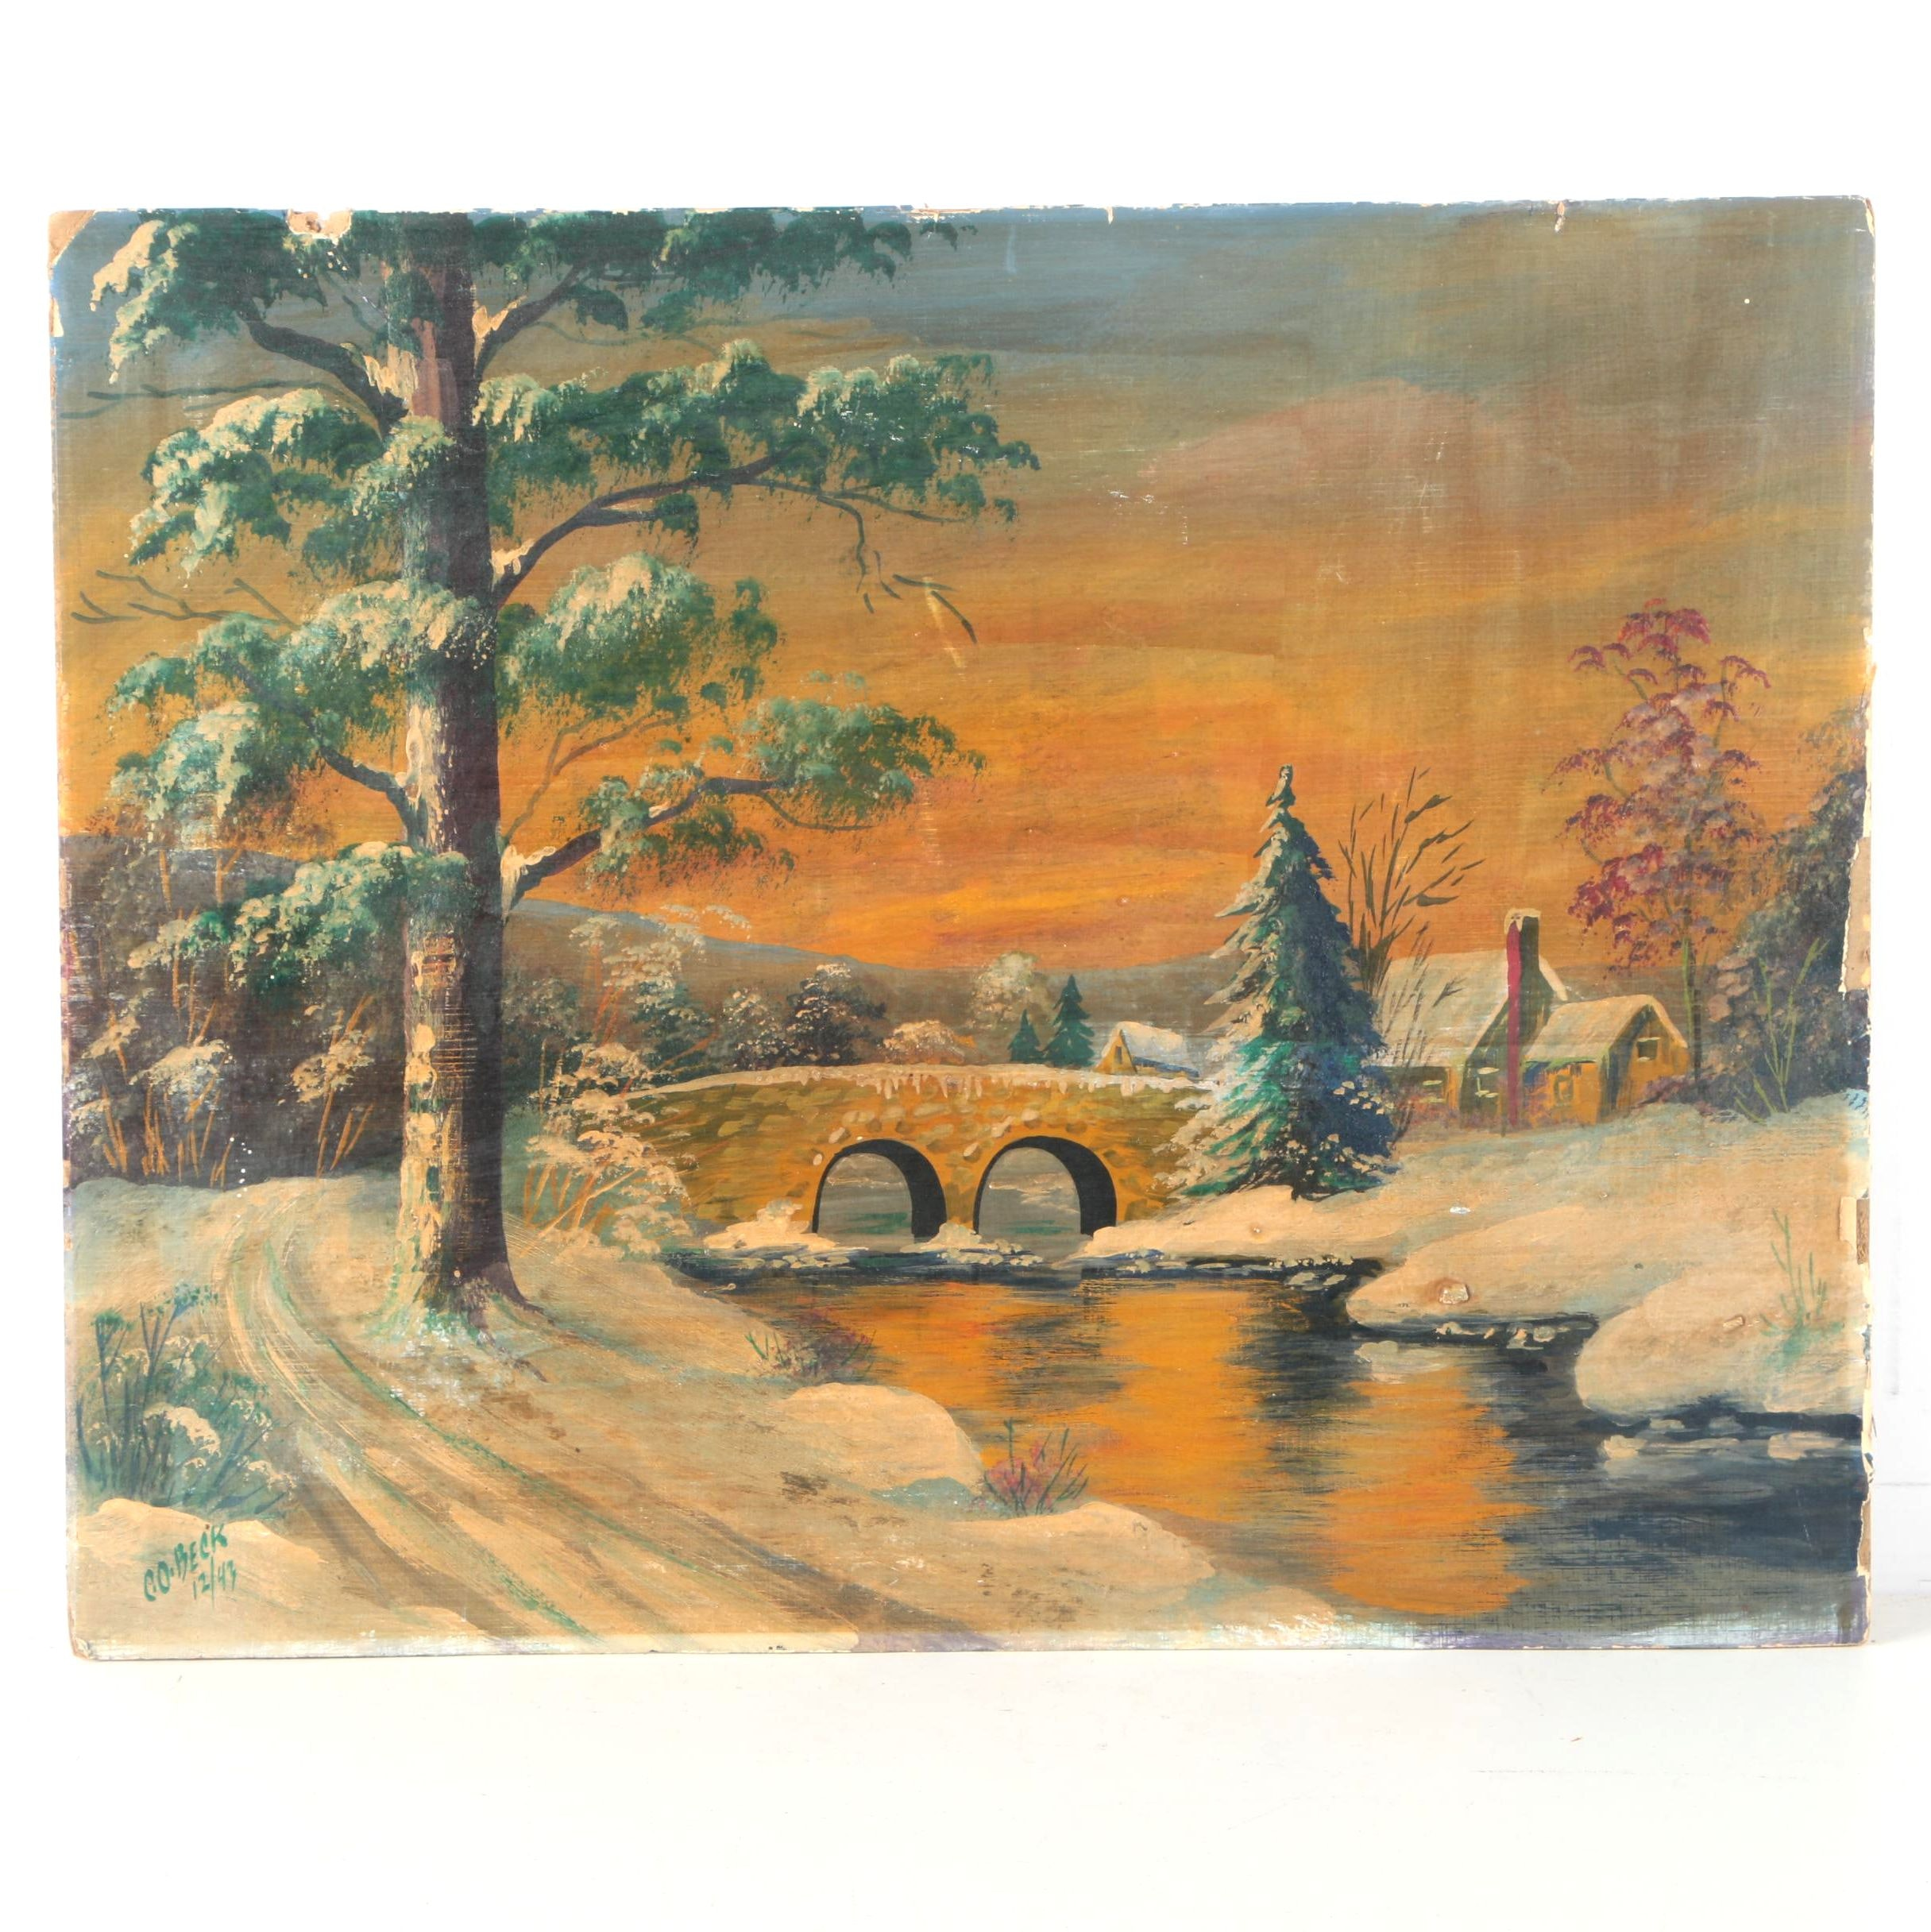 C.O. Beck Oil on Paper Laid on Cardboard Painting of Pastoral Winter Landscape